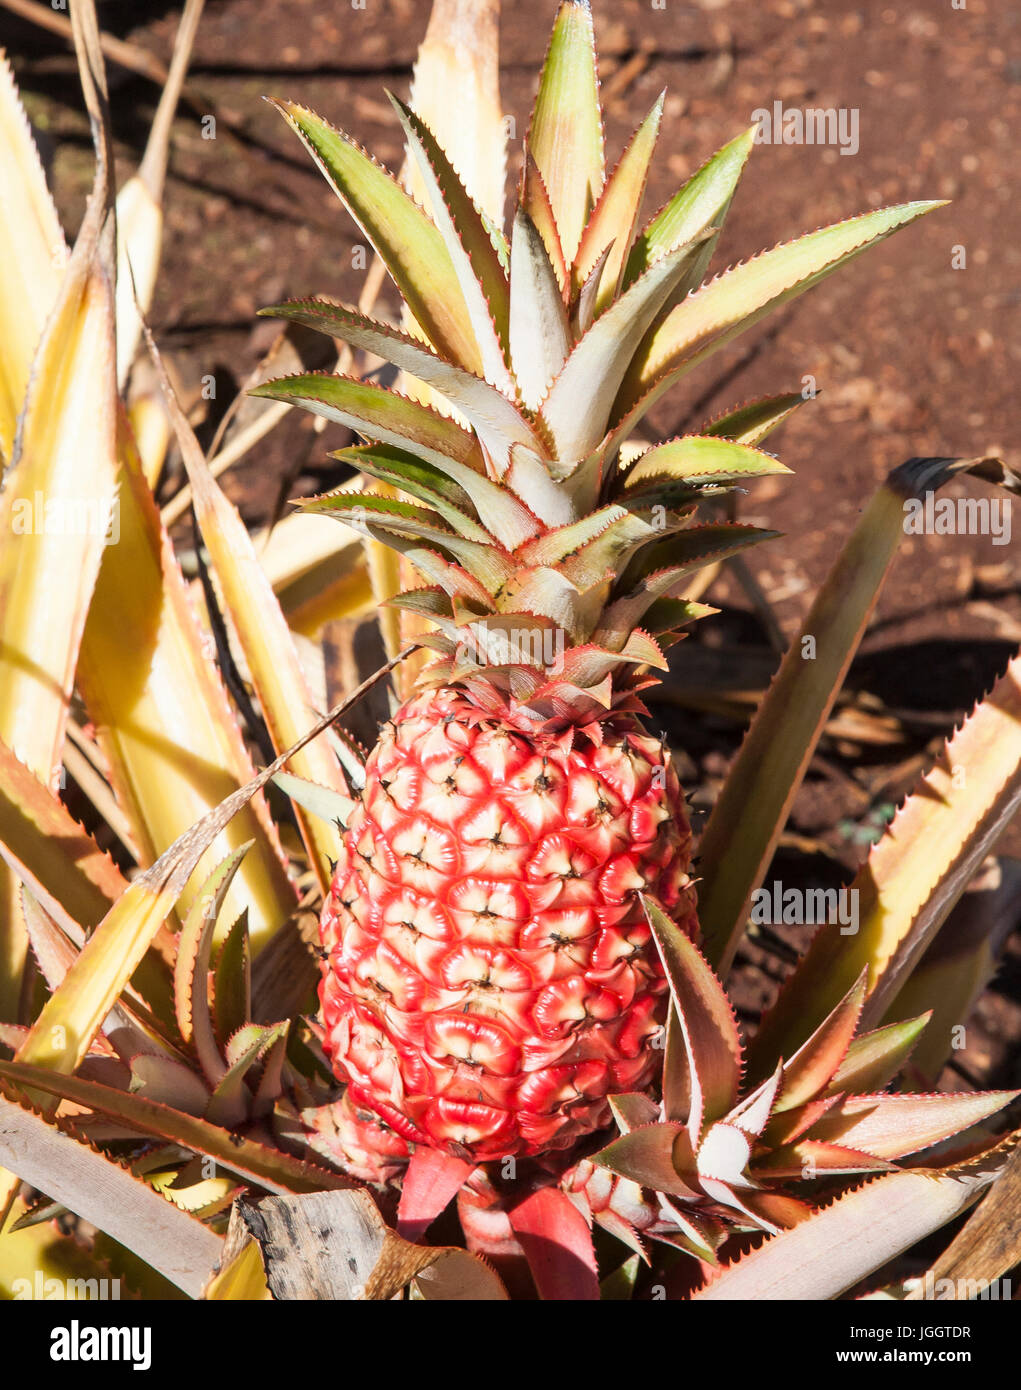 Hawaiian Pineapple Ready For Harvest - Stock Image